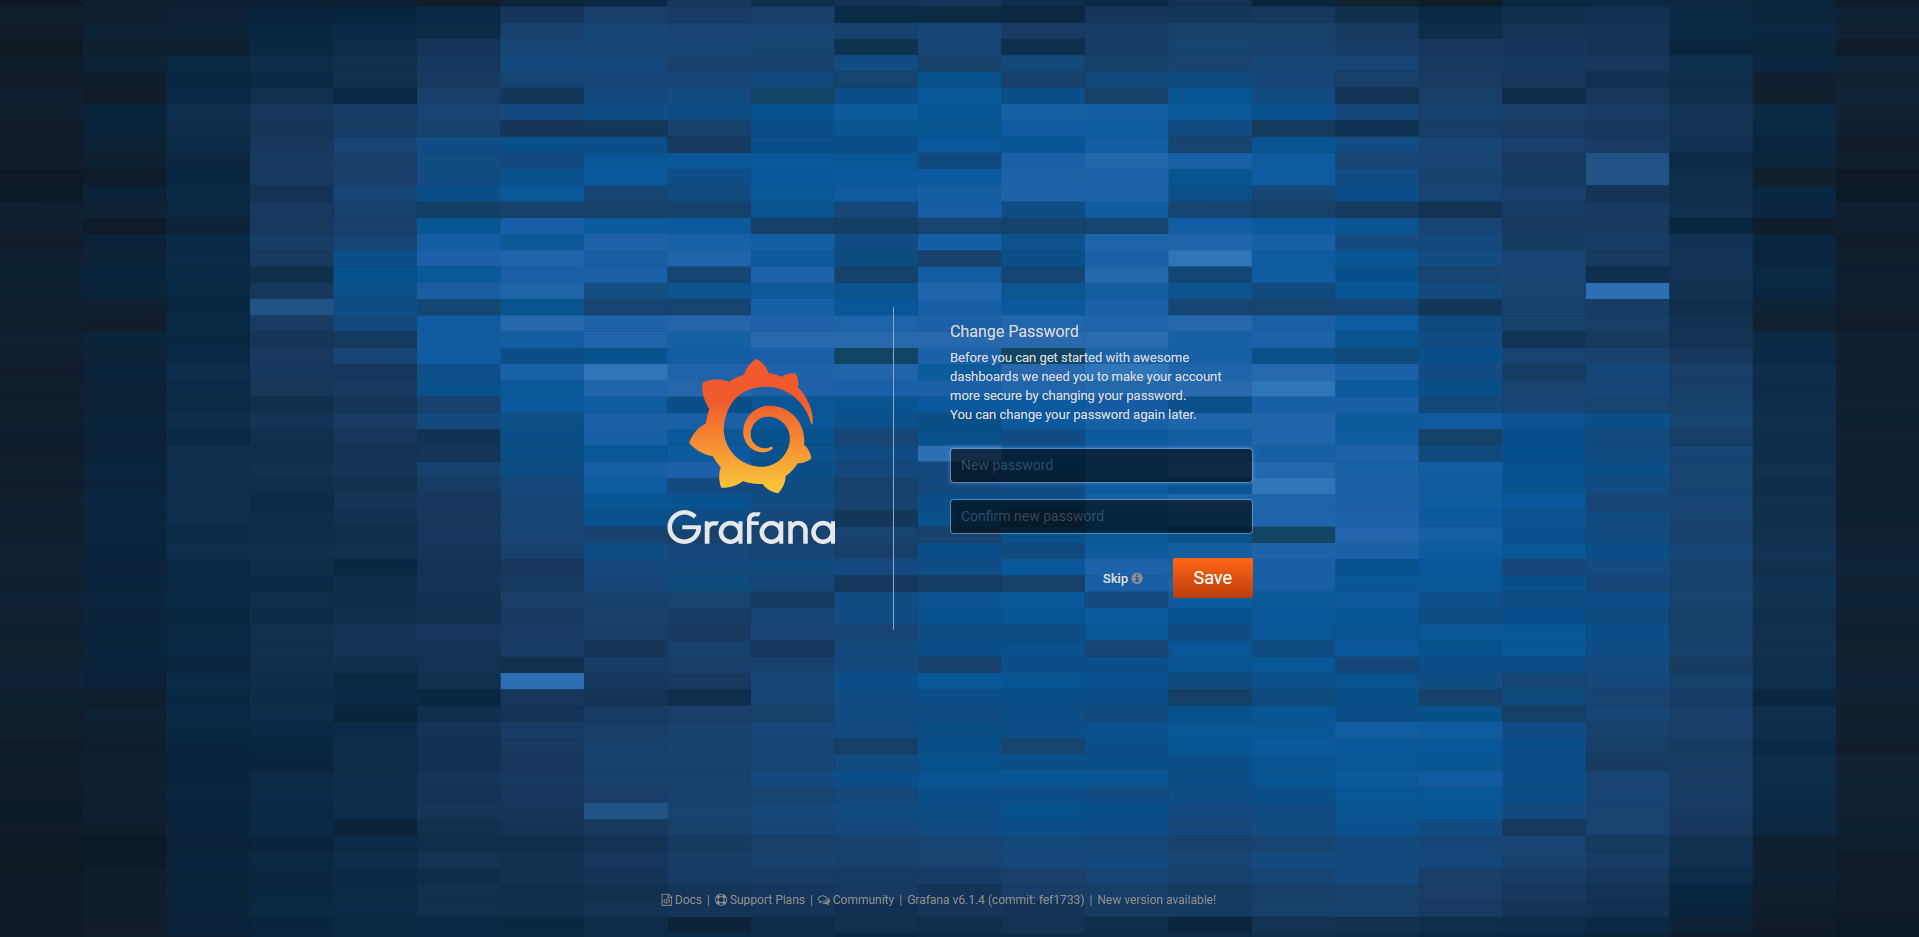 Grafana change password page